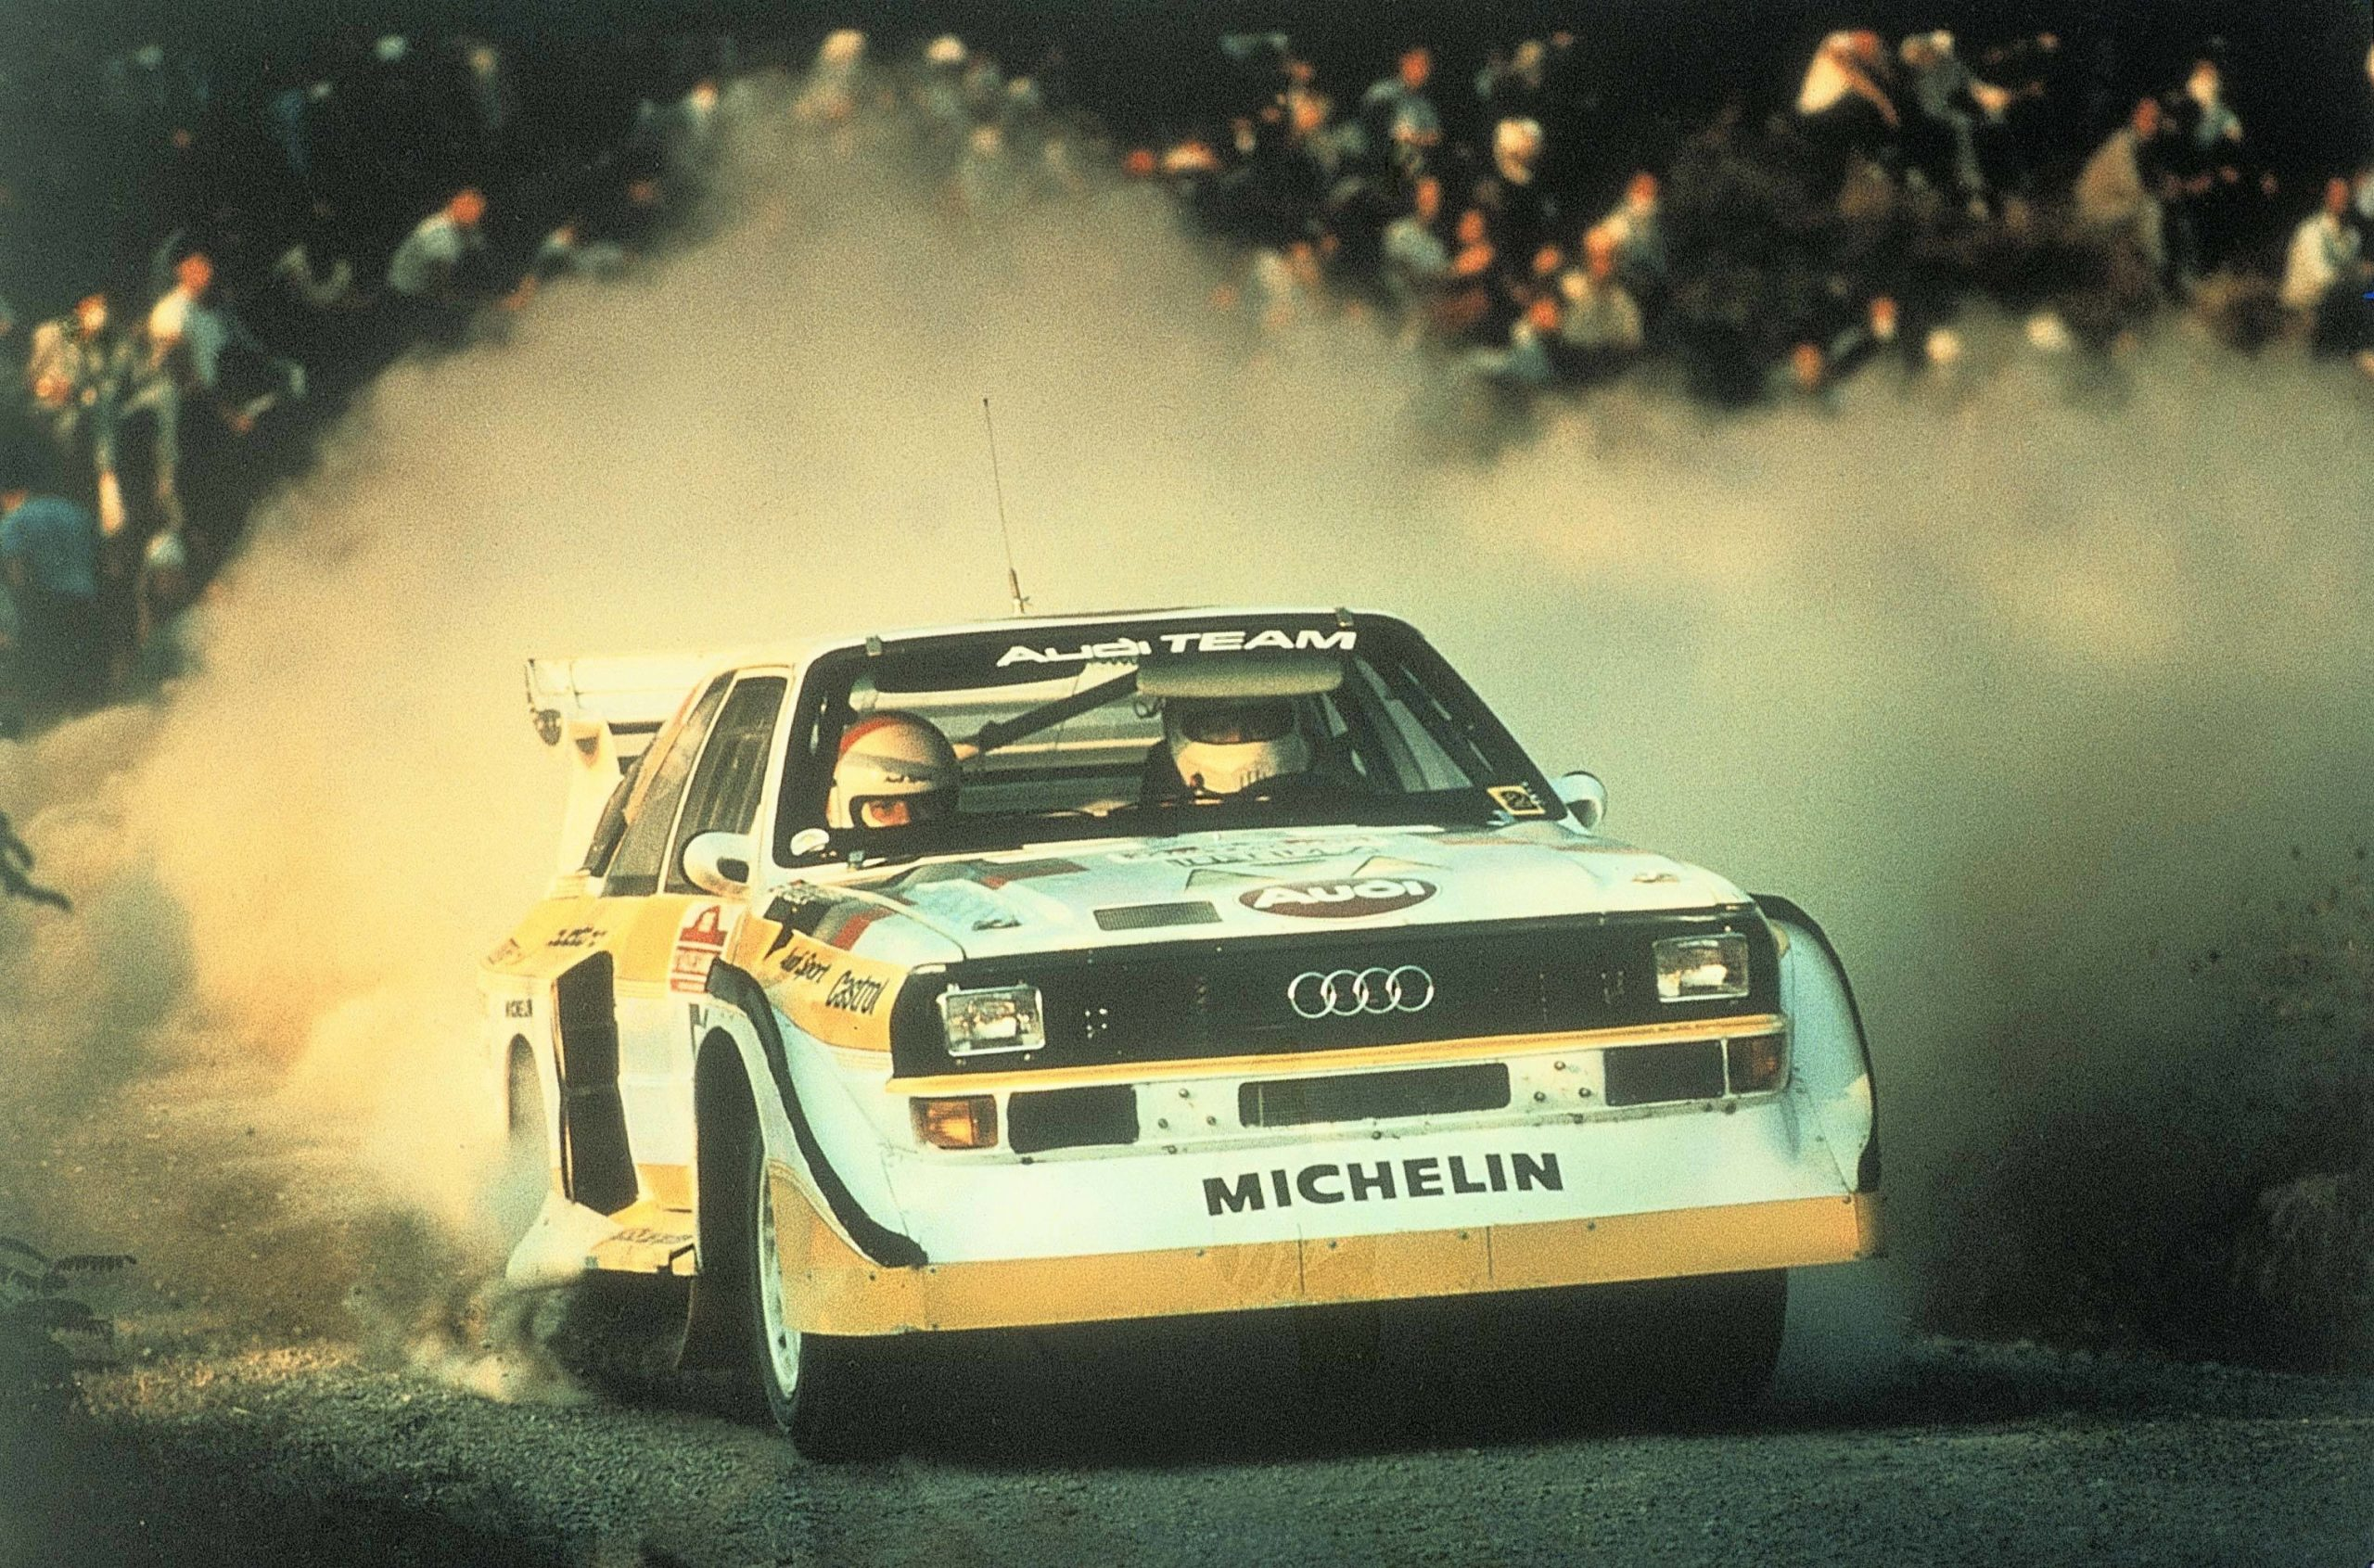 1985: Walter Röhrl wins the Rally San Remo with the Audi Sport quattro S1